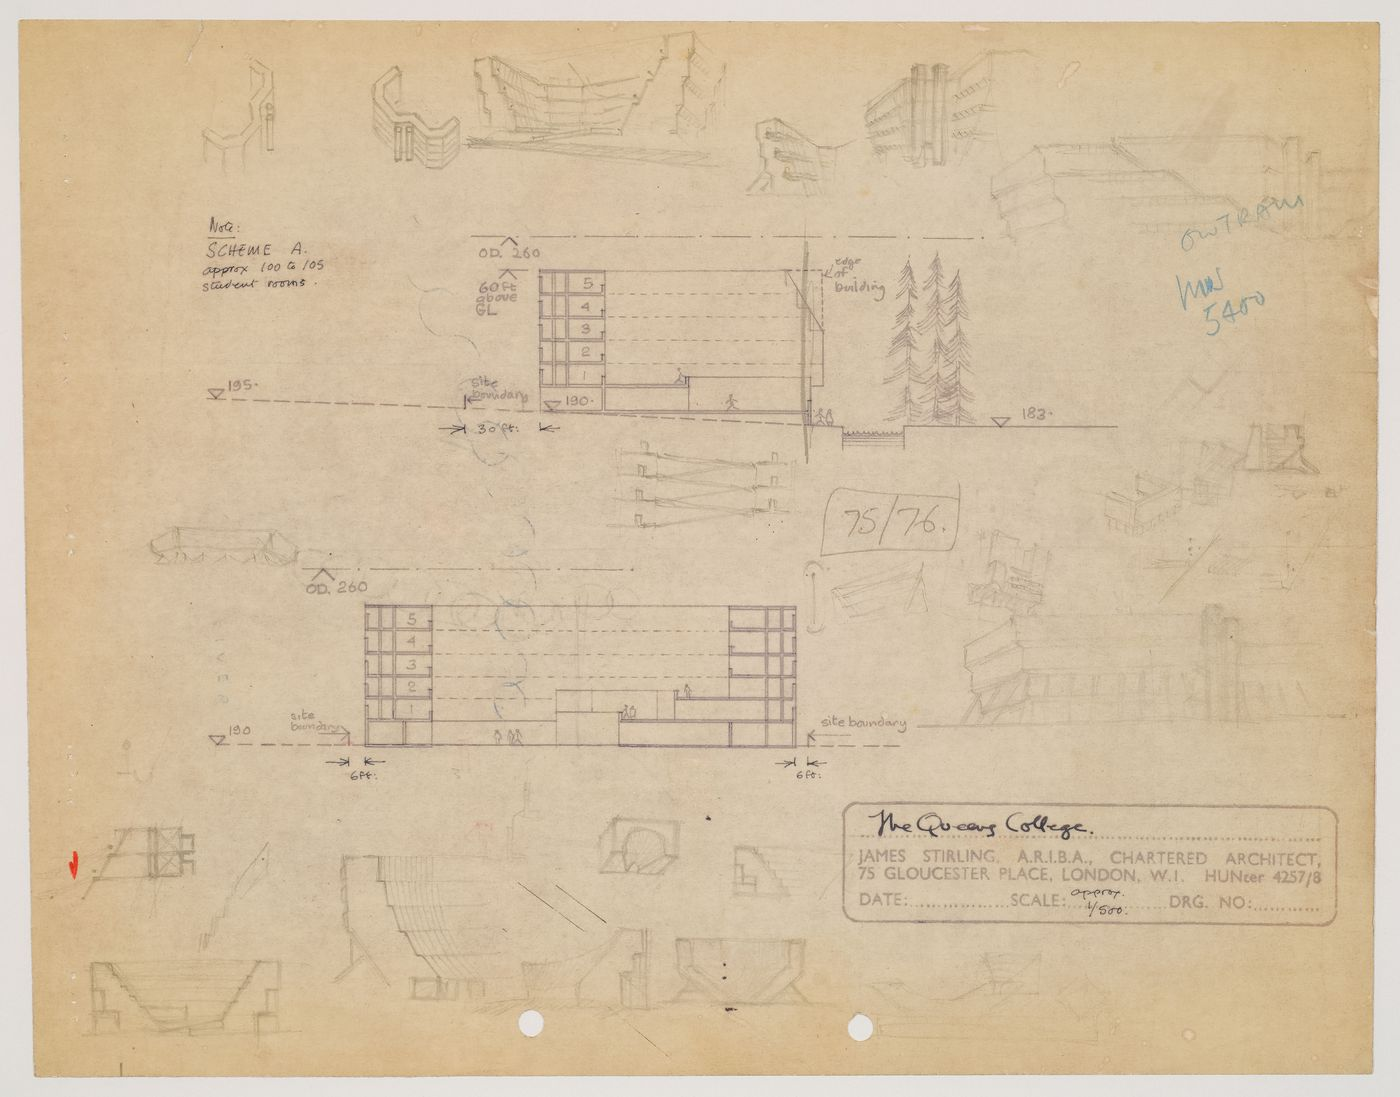 Florey Building, Queen's College, University of Oxford, Oxford, England: elevations and sketched sections and perspectives